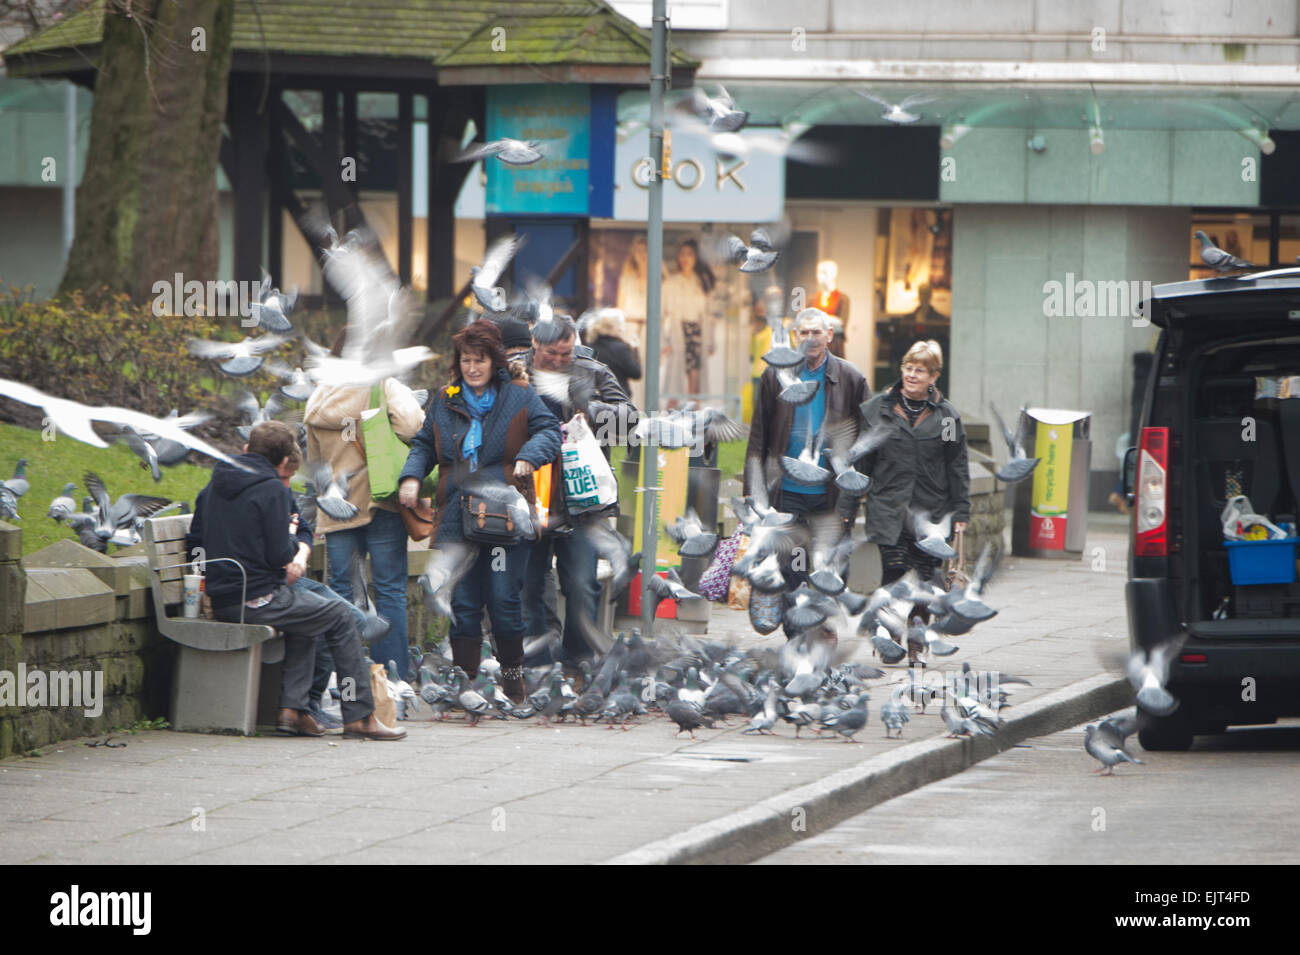 Nuisance birds: Shoppers surrounded by flocks of pigeons and seagulls in the street, Swansea Wales UK - Stock Image